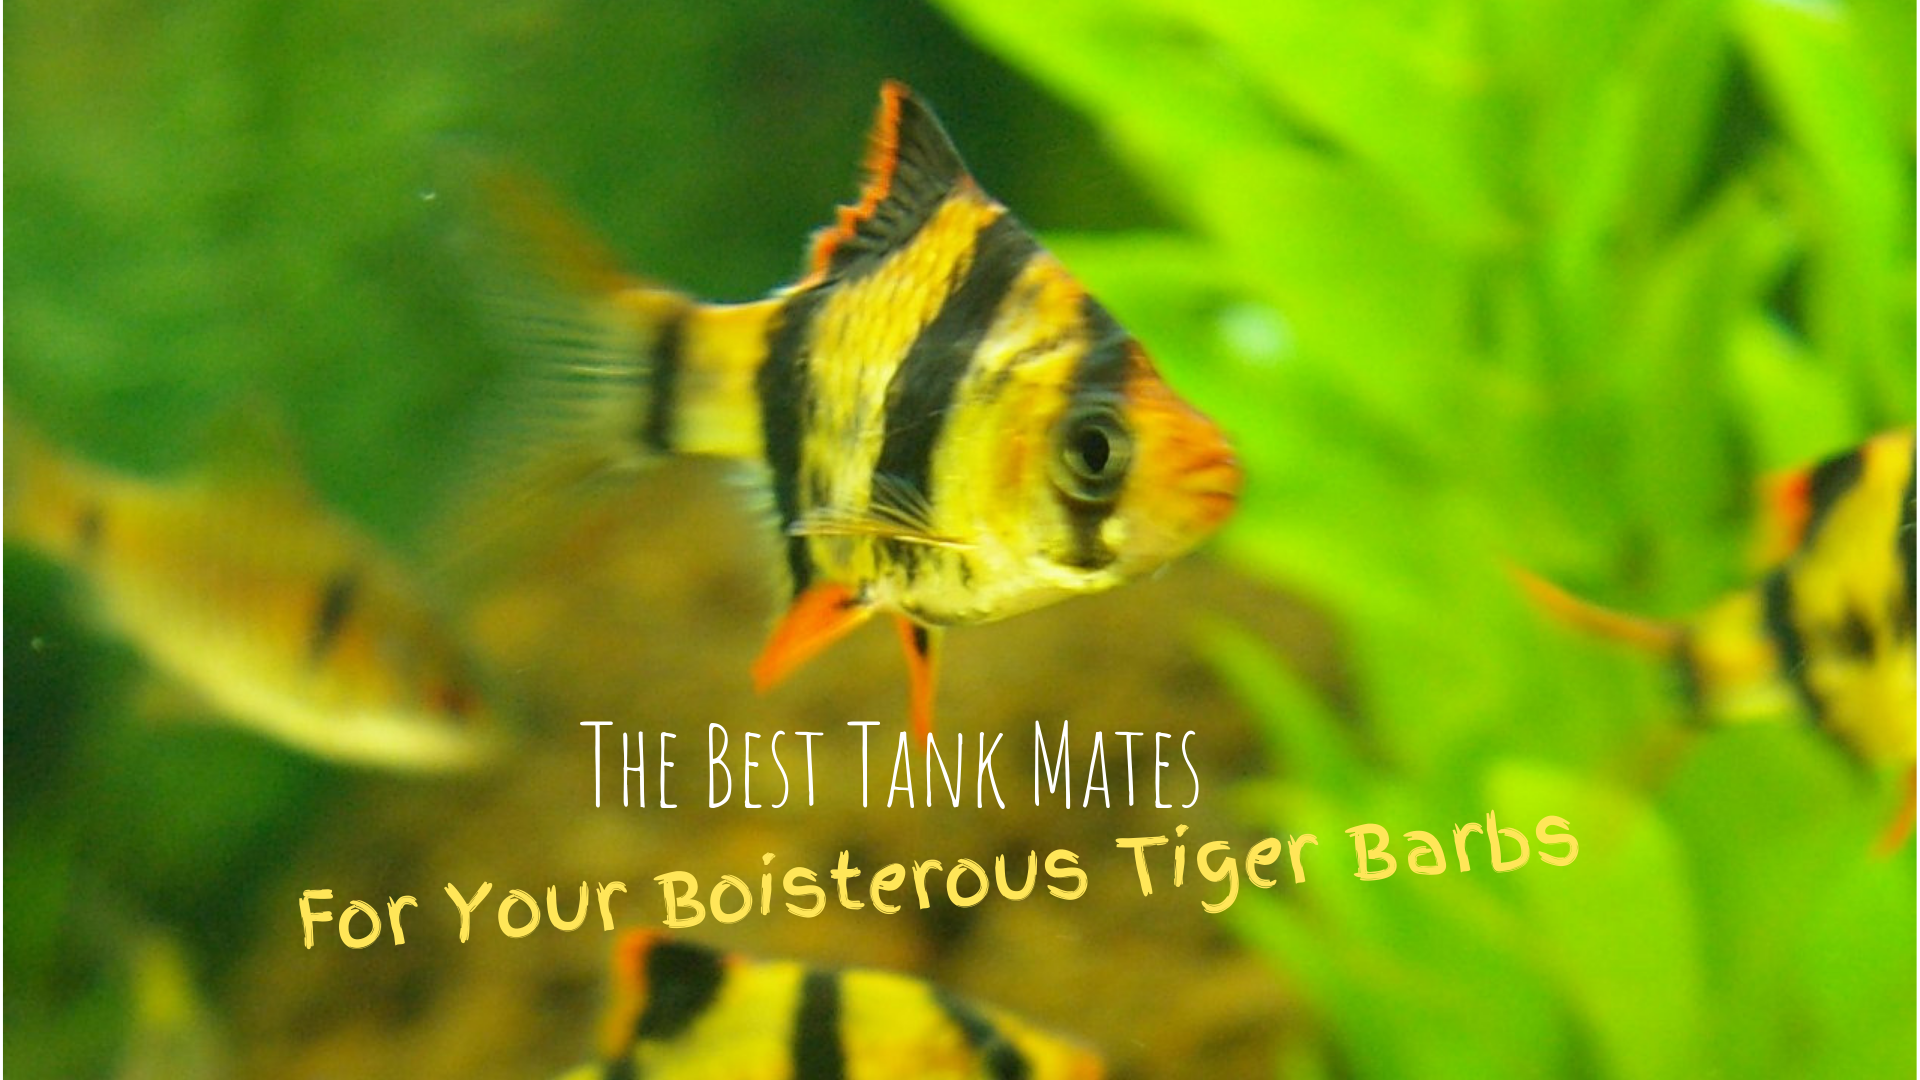 Tiger Barbs